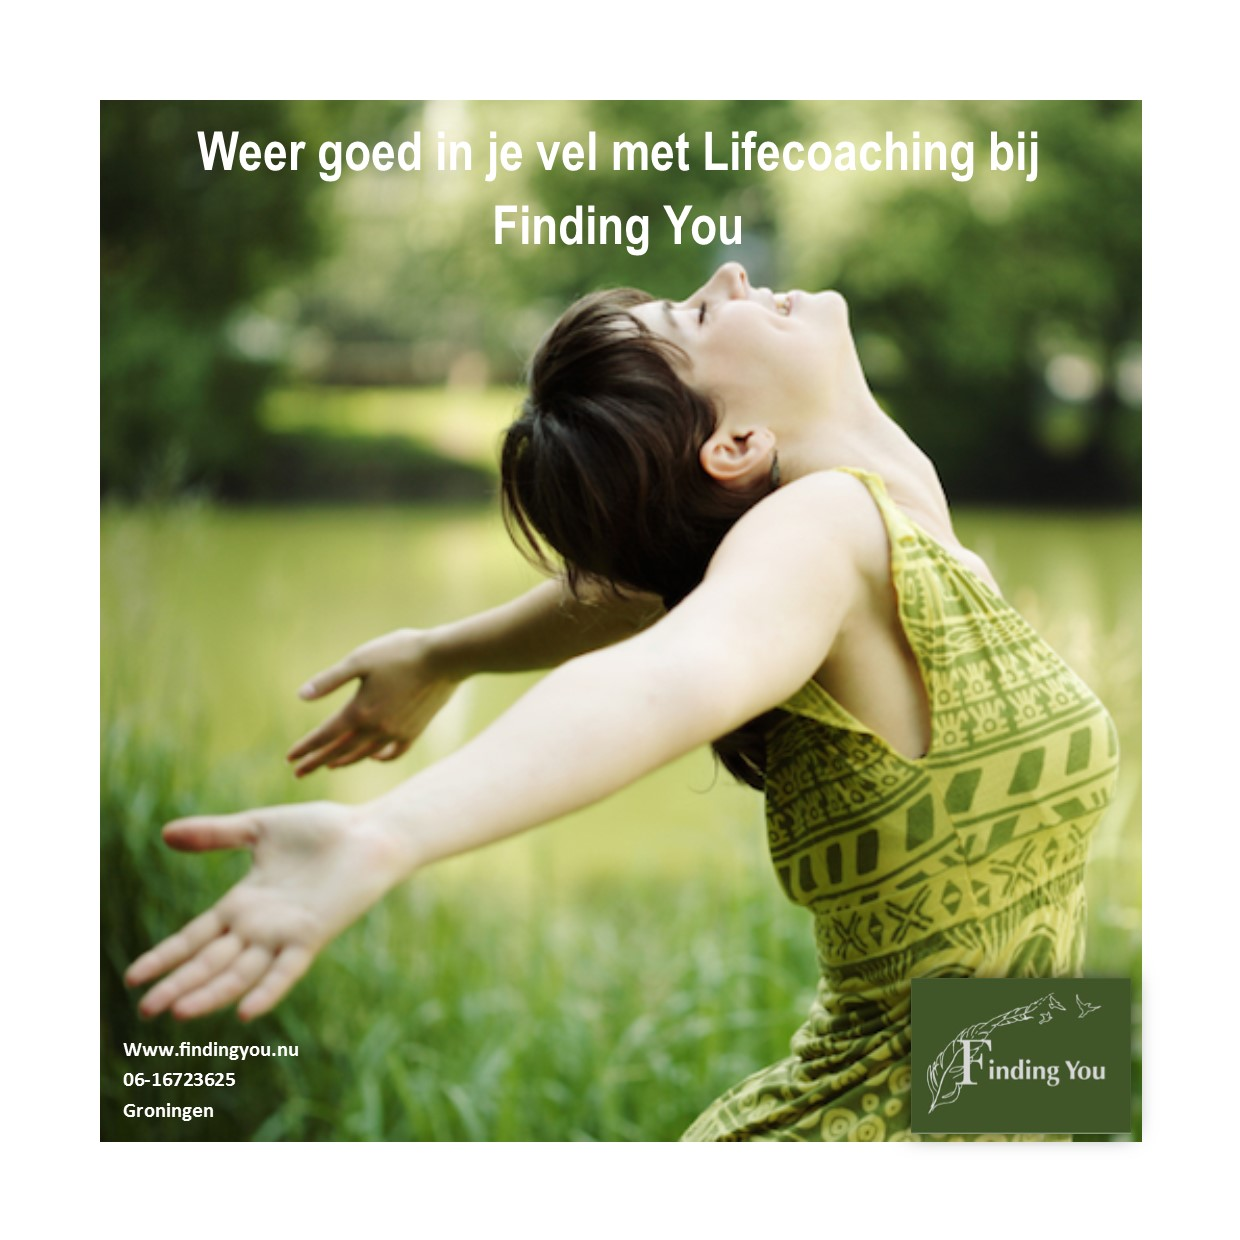 Finding You - lifecoaching